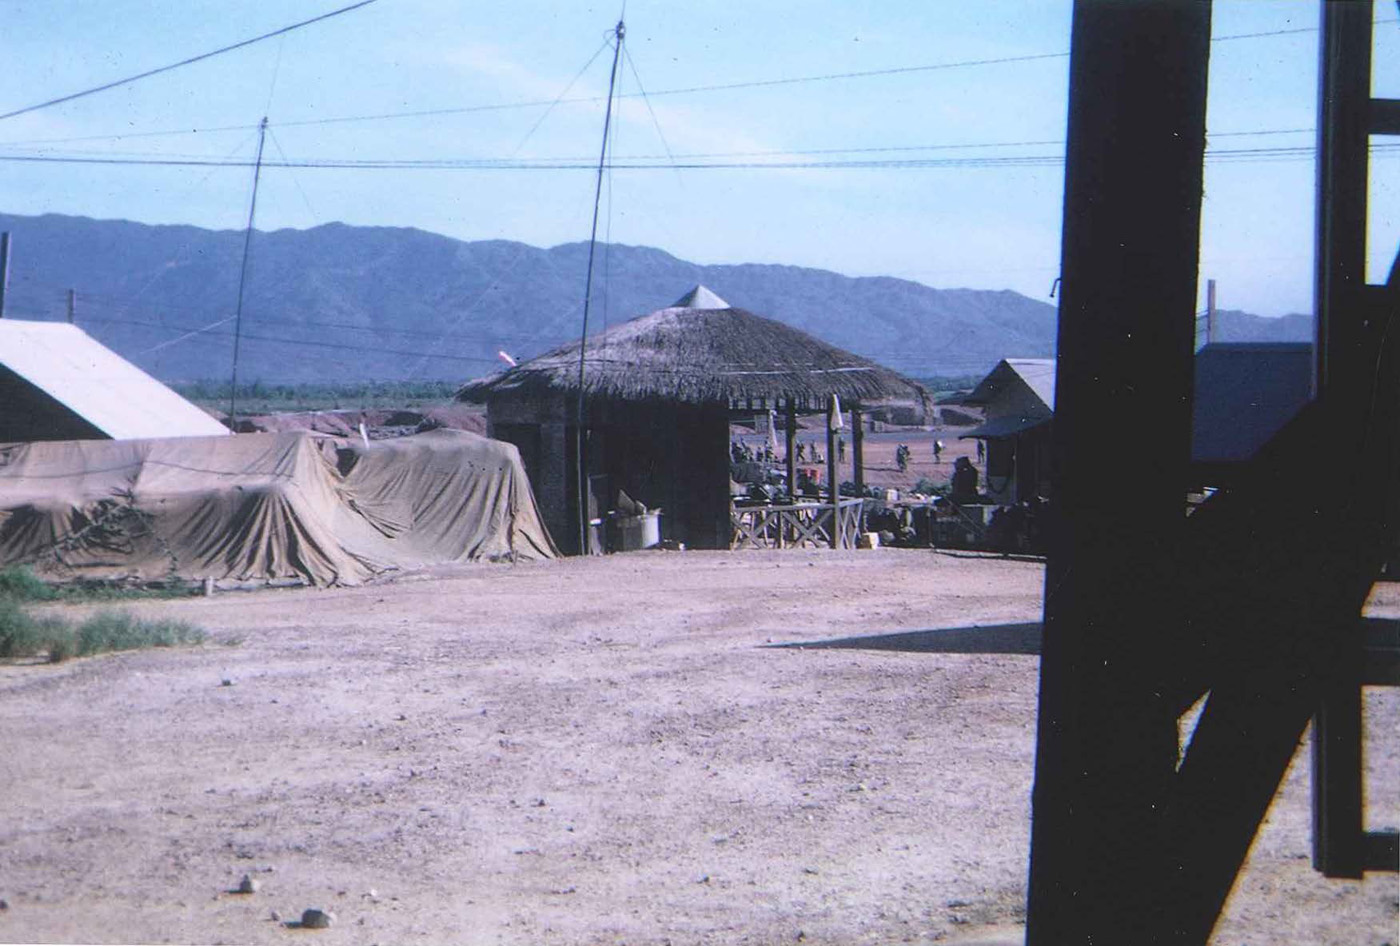 View from An Hoa base camp towards Laos on the other side of mountains – photo taken in September 1968